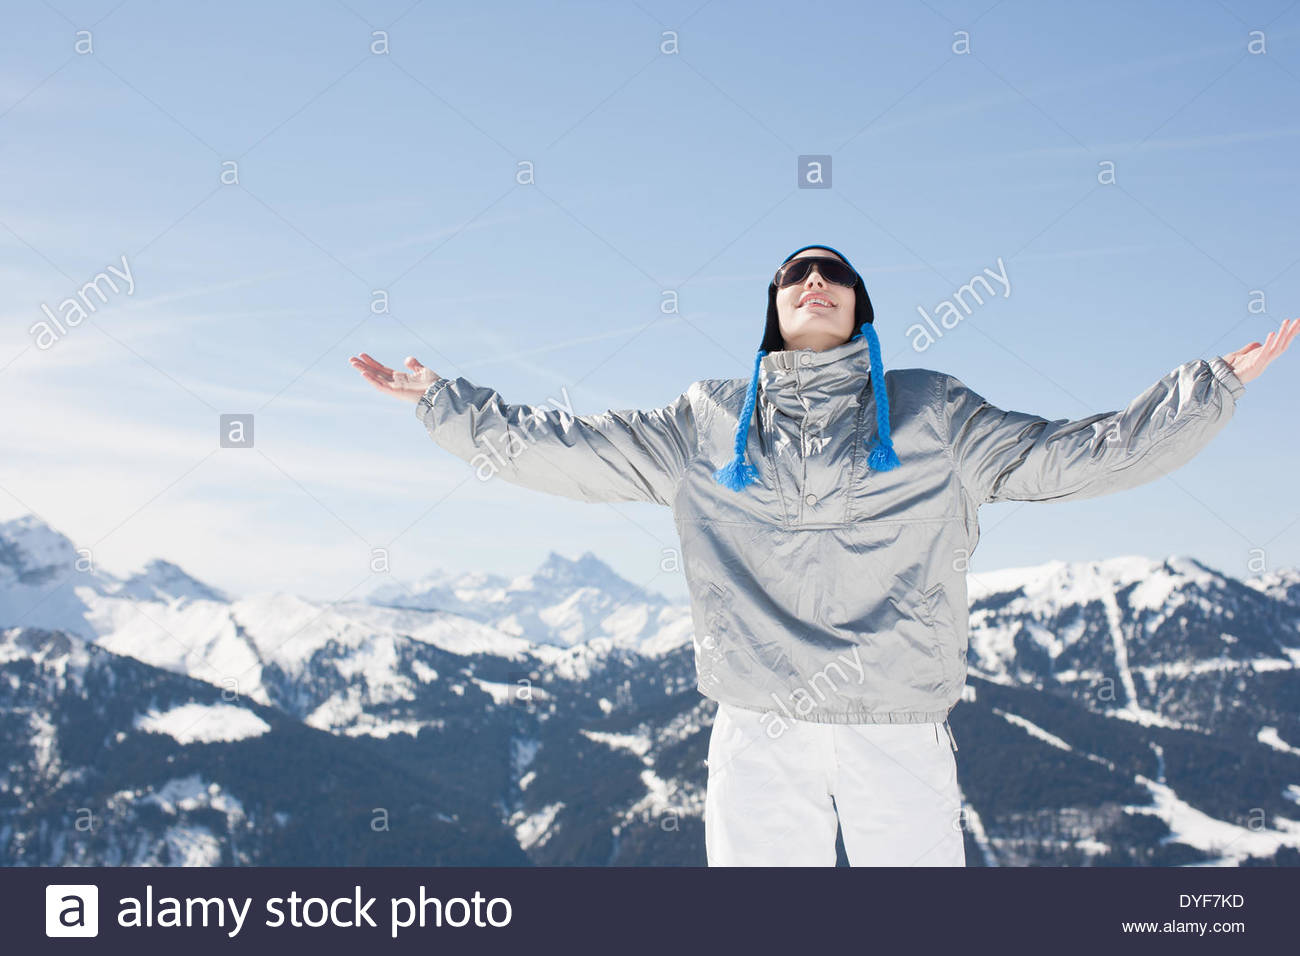 Woman with arms outstretched in snow - Stock Image